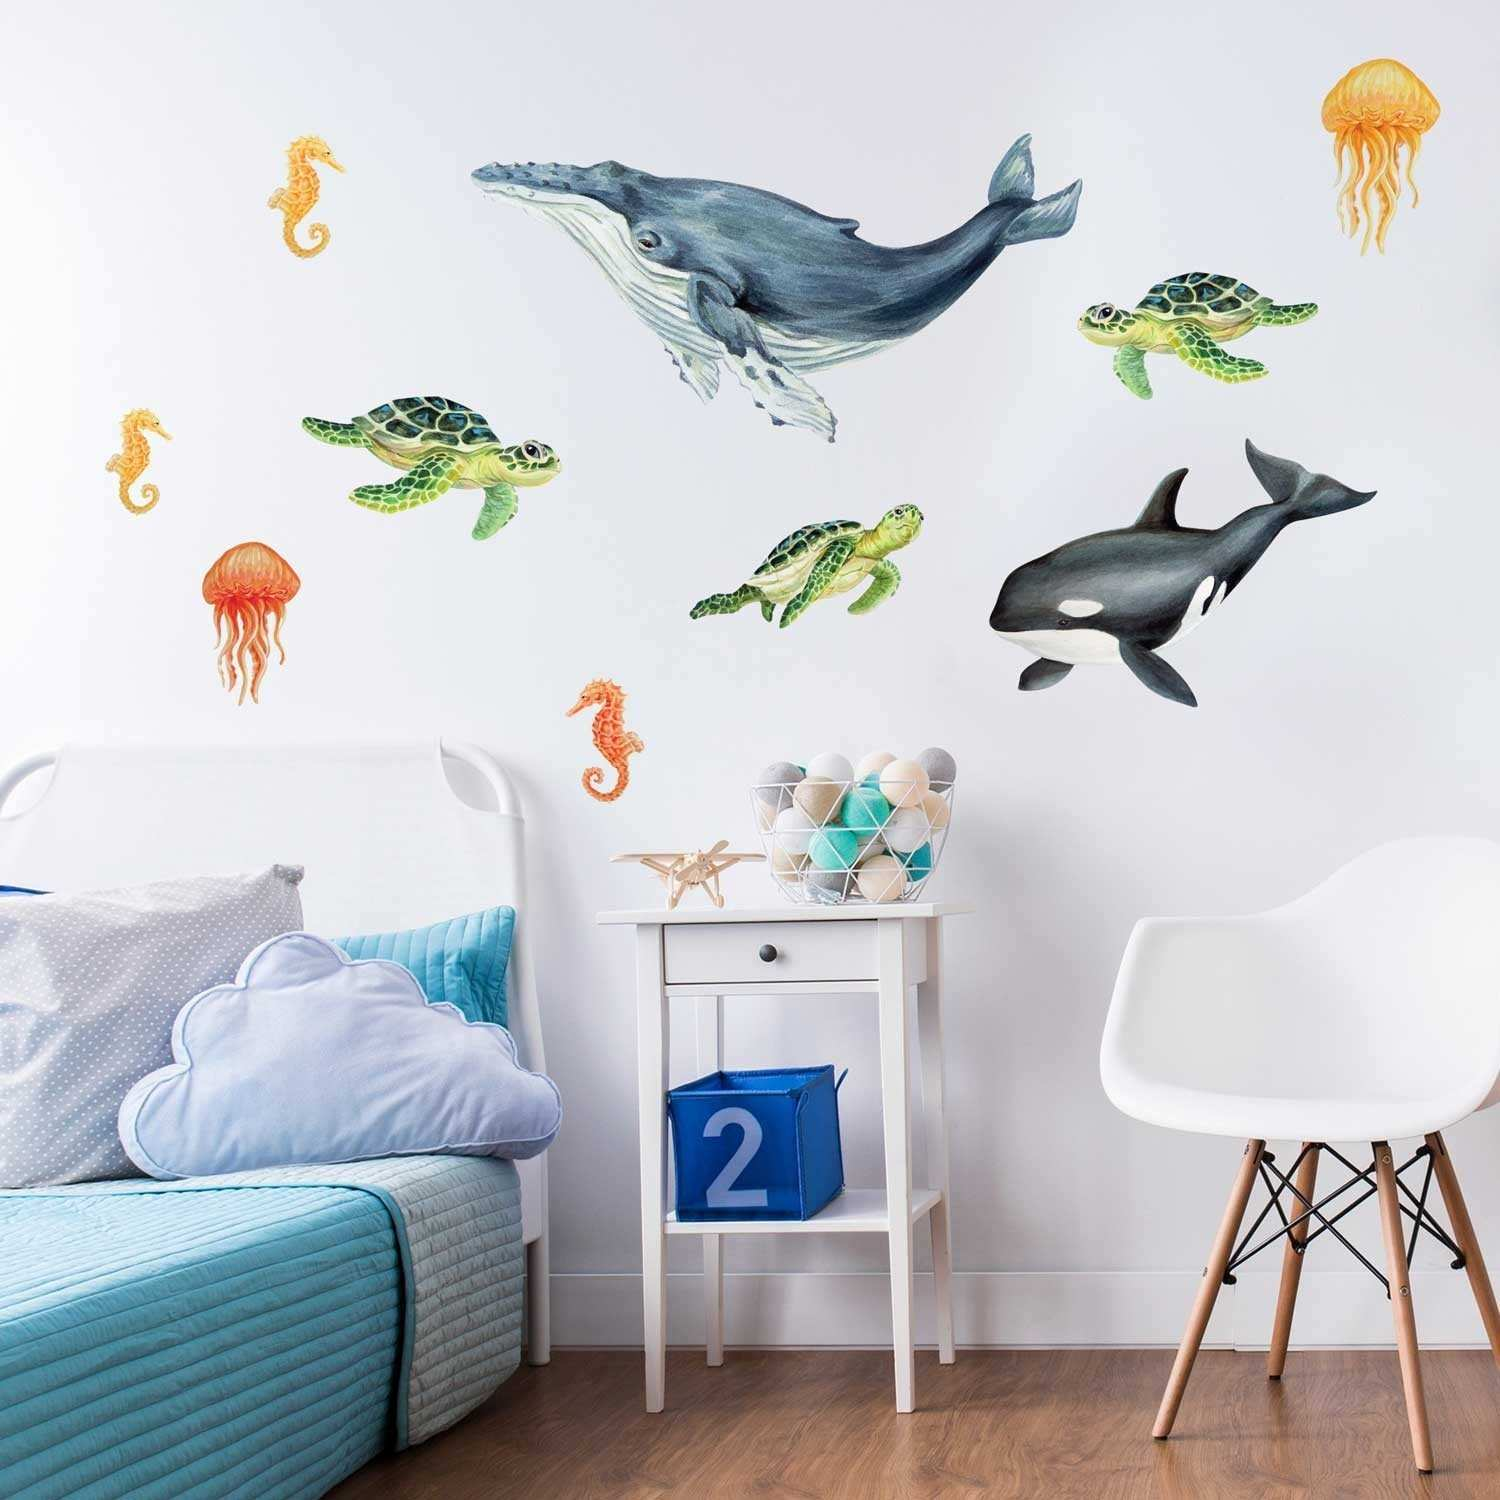 Luxury Modern Wall Decals for Living Room